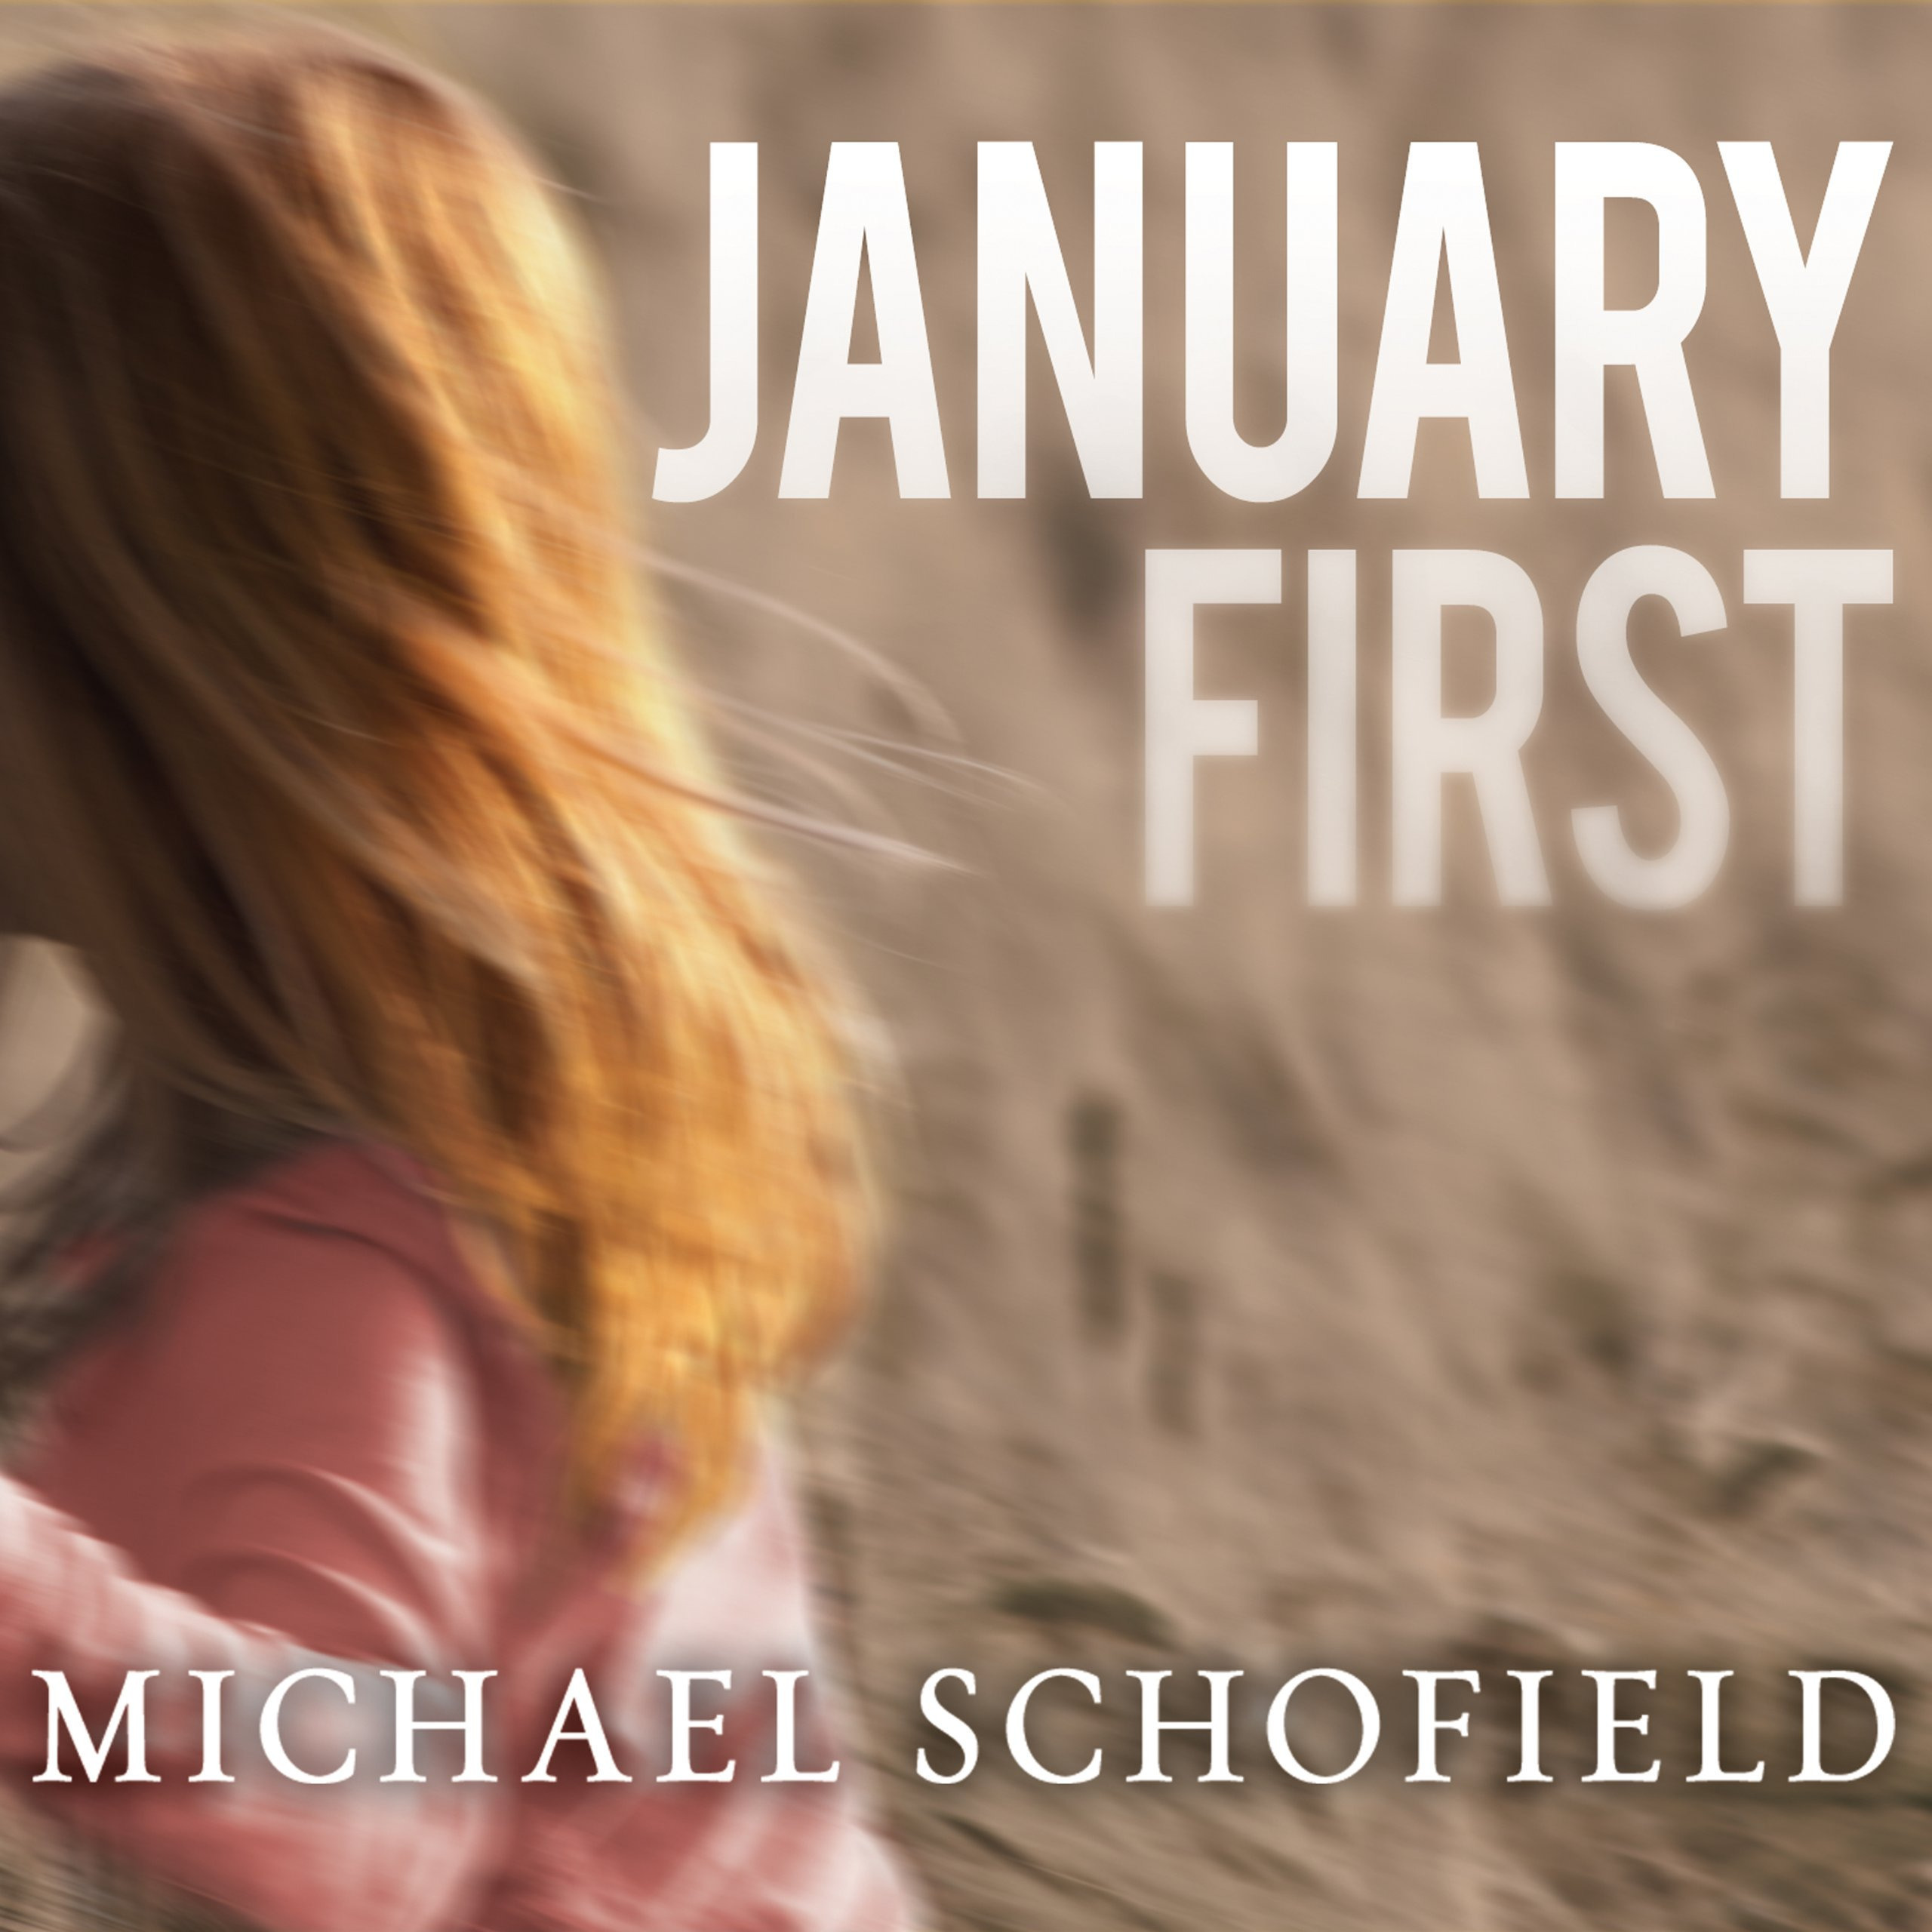 Printable January First: A Child's Descent into Madness and Her Father's Struggle to Save Her Audiobook Cover Art